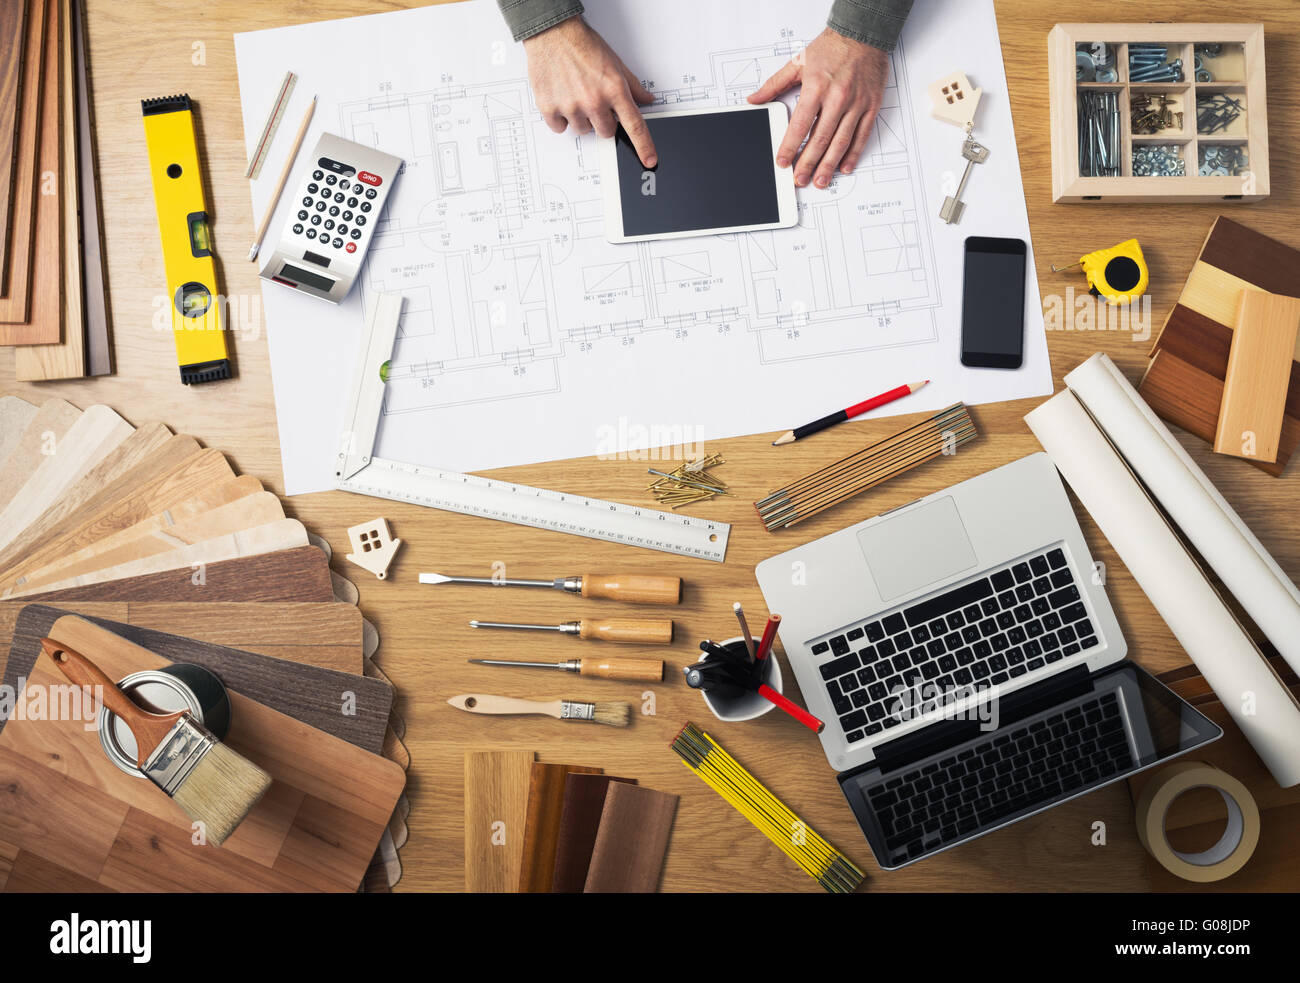 Construction engineer and architect's desk with house projects, laptop, tools and wood swatches top view, male - Stock Image